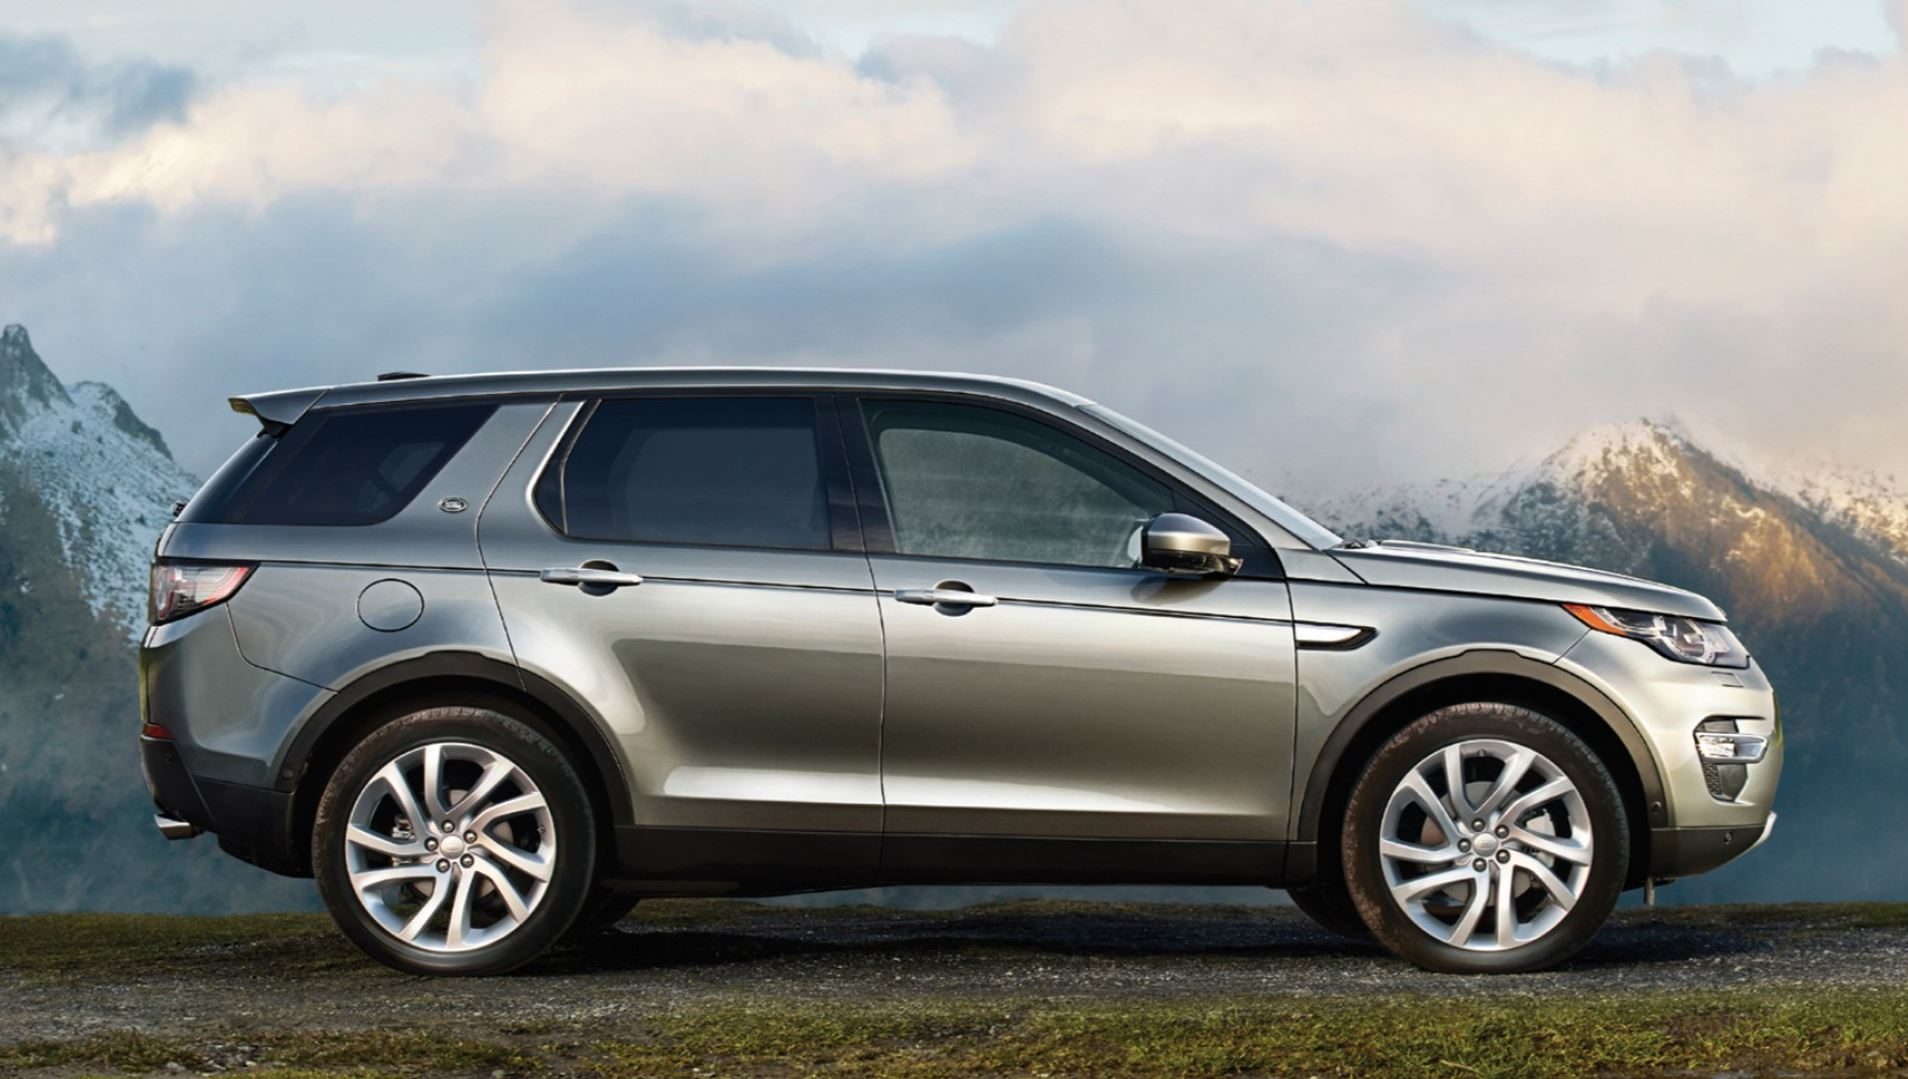 Land Rover Discovery Sport Has Room For 7 Adults: Reports ...